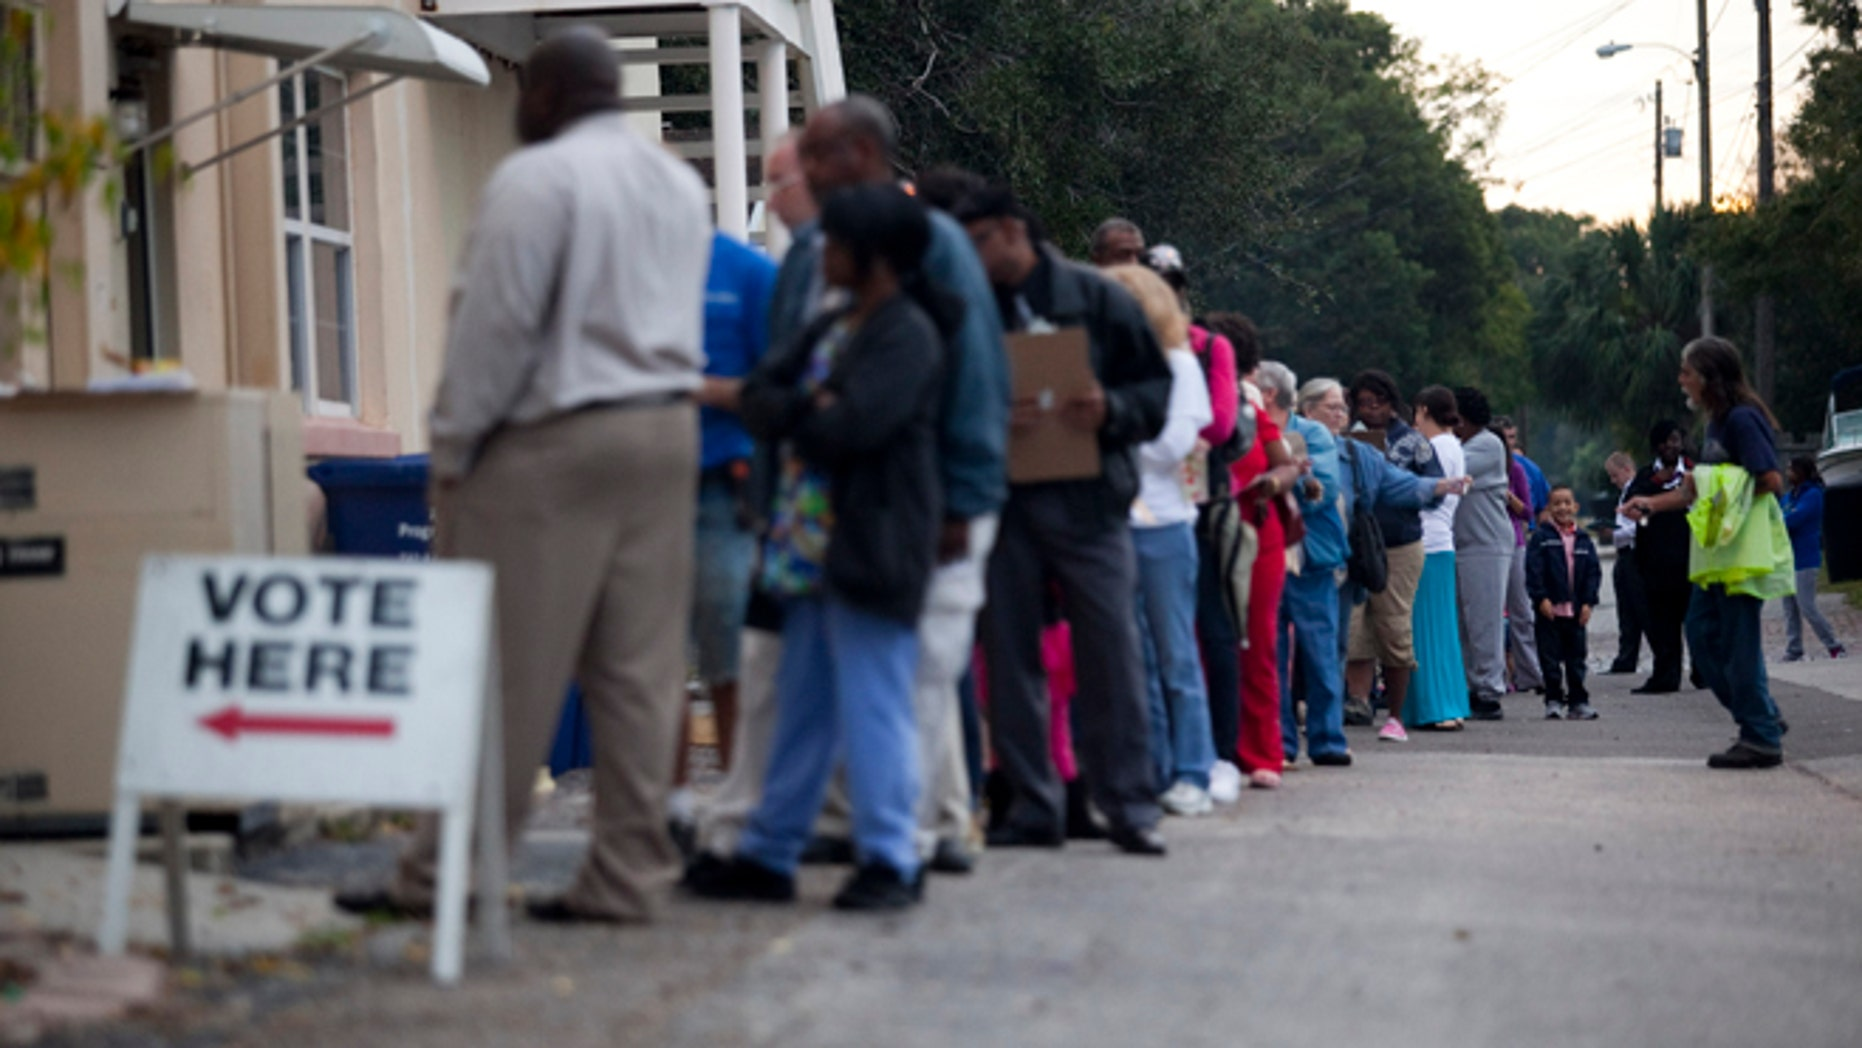 ST. PETERSBURG, FL - NOVEMBER 6:  Lines of voters wait to cast their ballots as the polls open November 6, 2012 in St. Petersburg, Florida. The swing state of Florida is a hotly-contested battleground that offers 29 electoral votes. (Photo by Edward Linsmier/Getty Images)